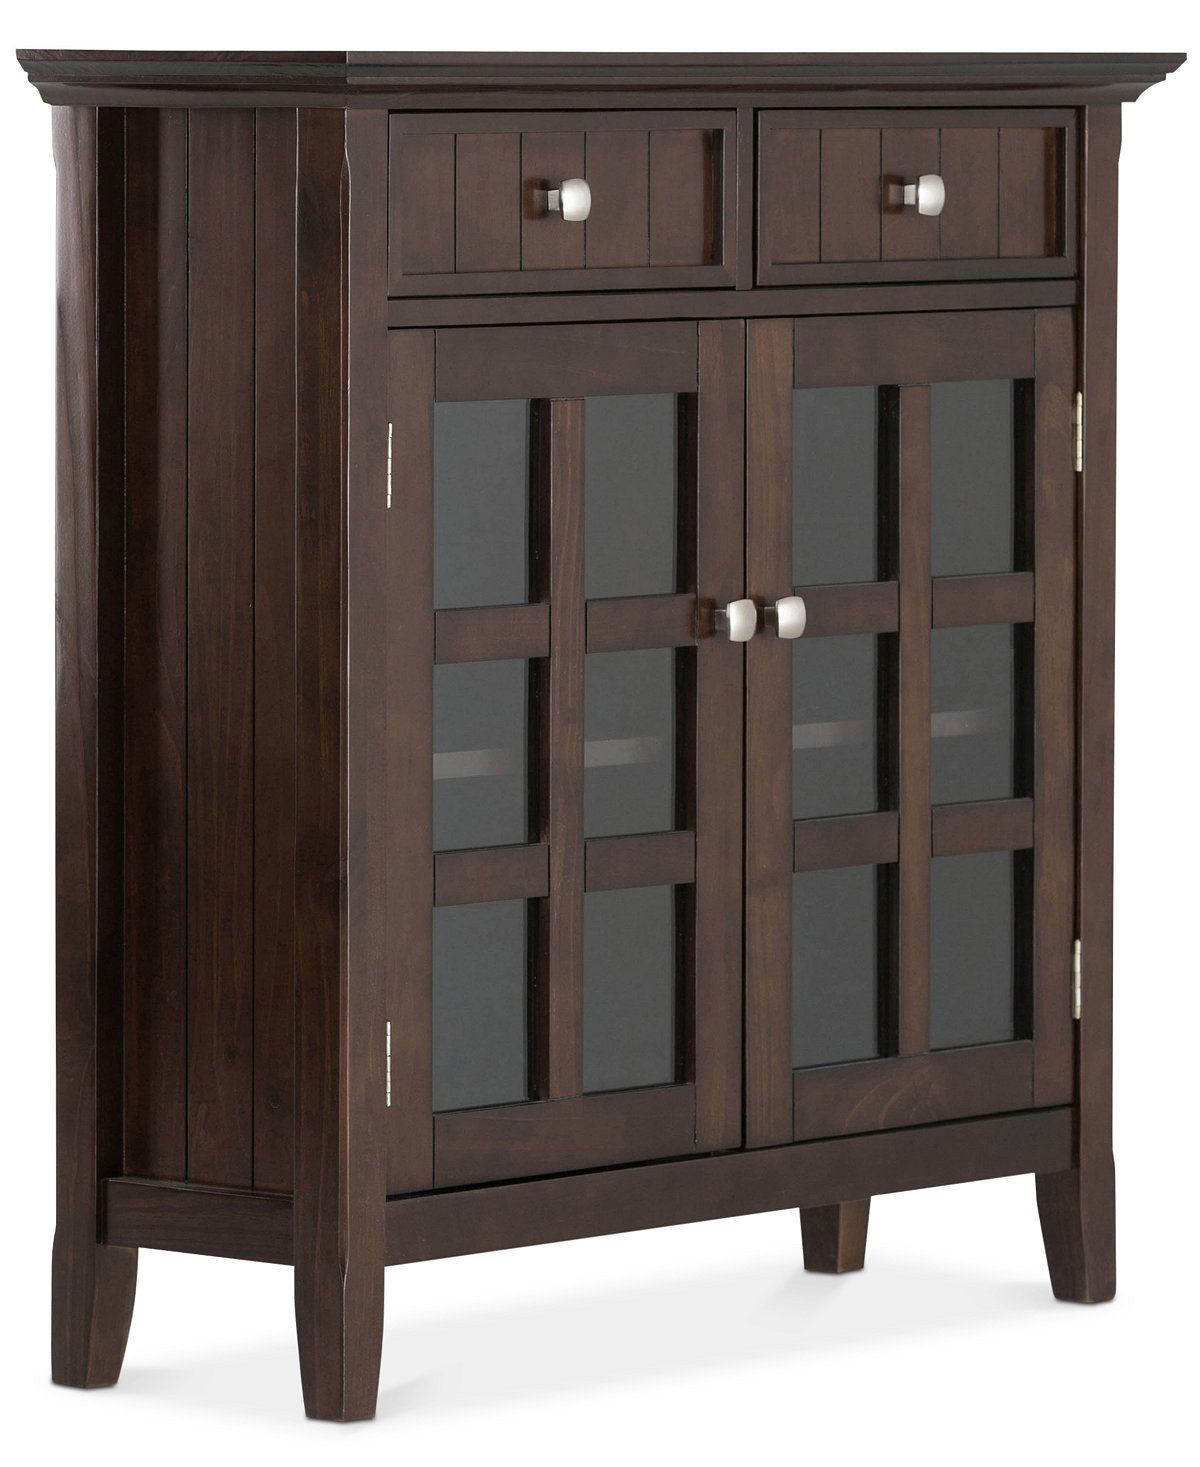 closet and traditional furniture cabinets sprinklers blinds coverings treatments powder creative kitchen black tile excellent cabinet floor magazines window glass wood barn doors home storage organizing solutions design remodeled elegant entryway with ideas entry